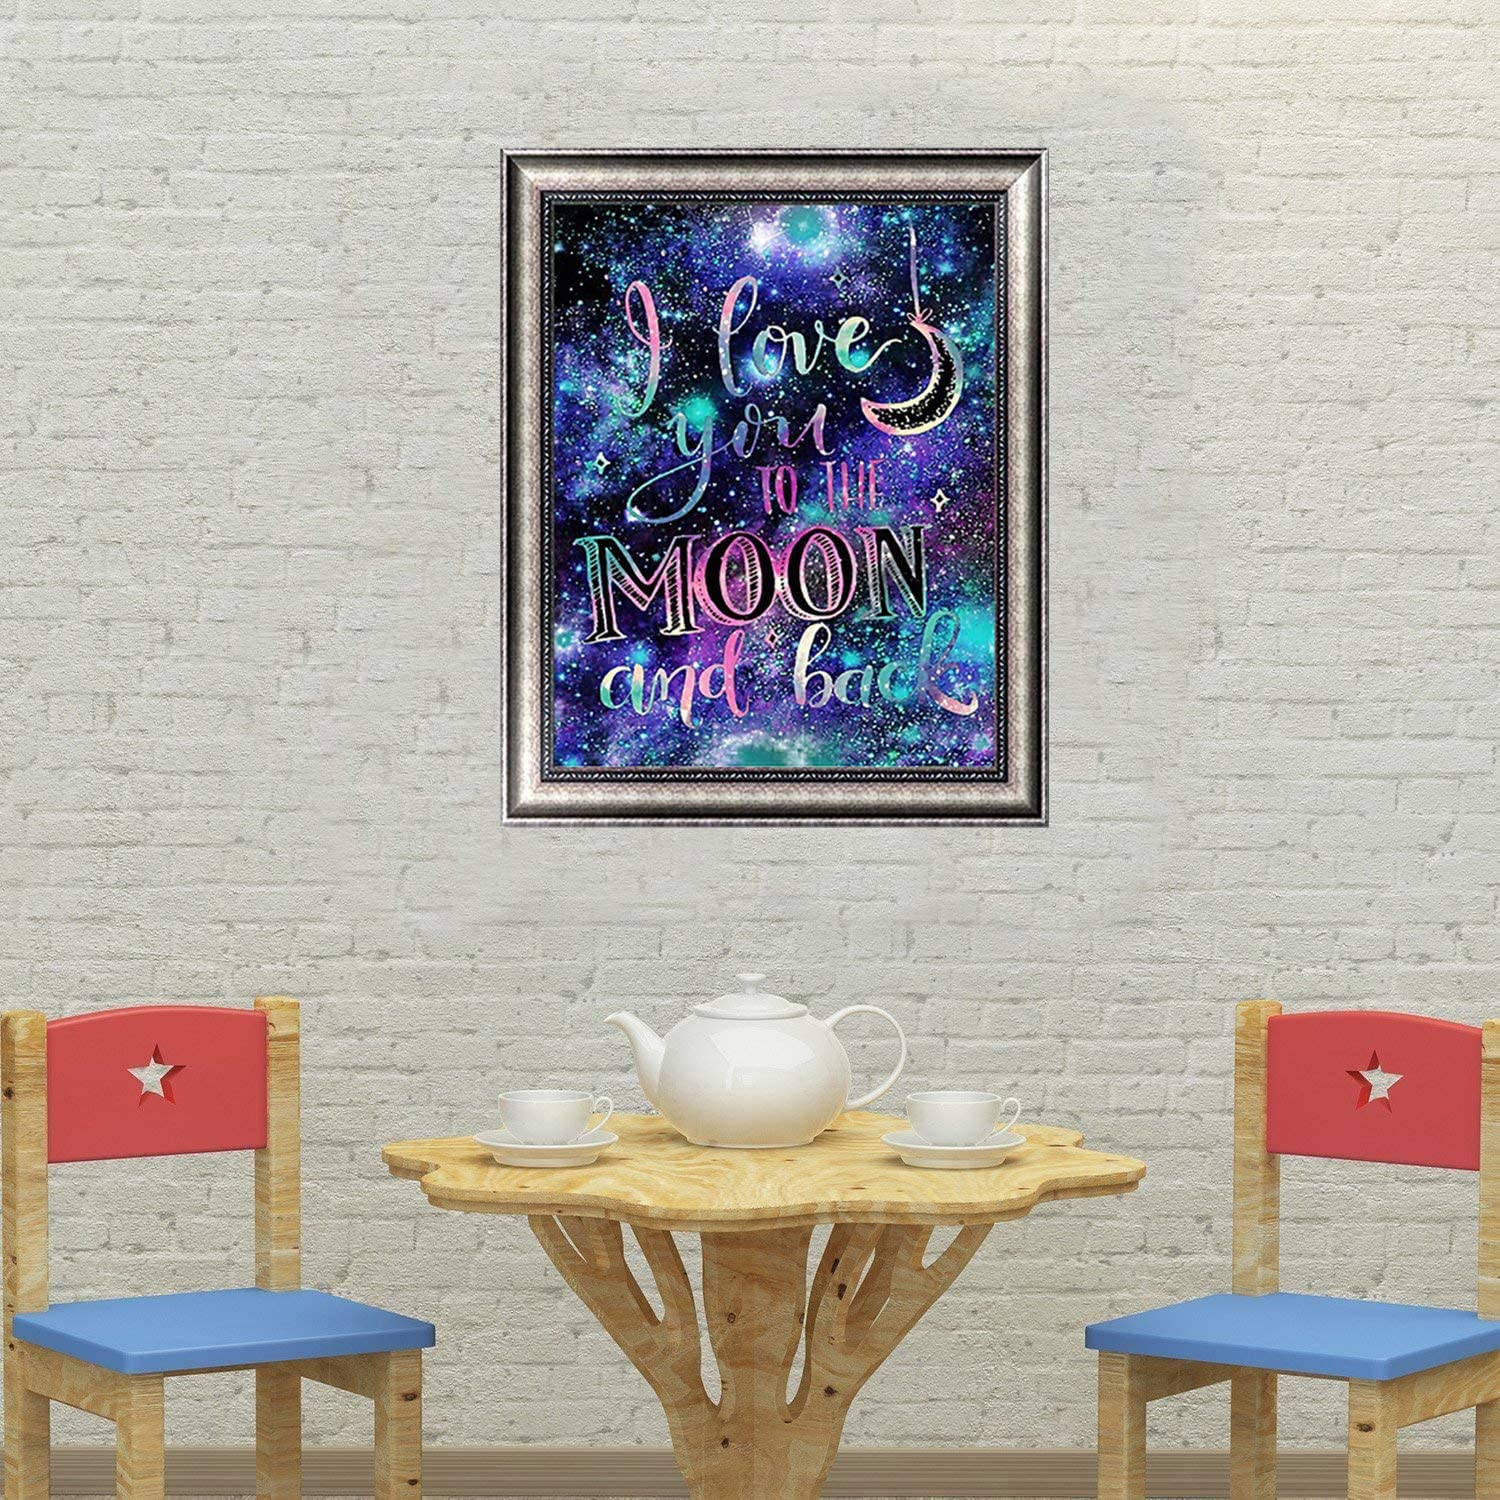 5D Diamond Painting Kit Full Drill Rhinestone Pictures Diamond Embroidery Paintings Arts Craft for Home Wall Decor Gift Color Set 7, 30 * 30CM trounistro Diamond Painting